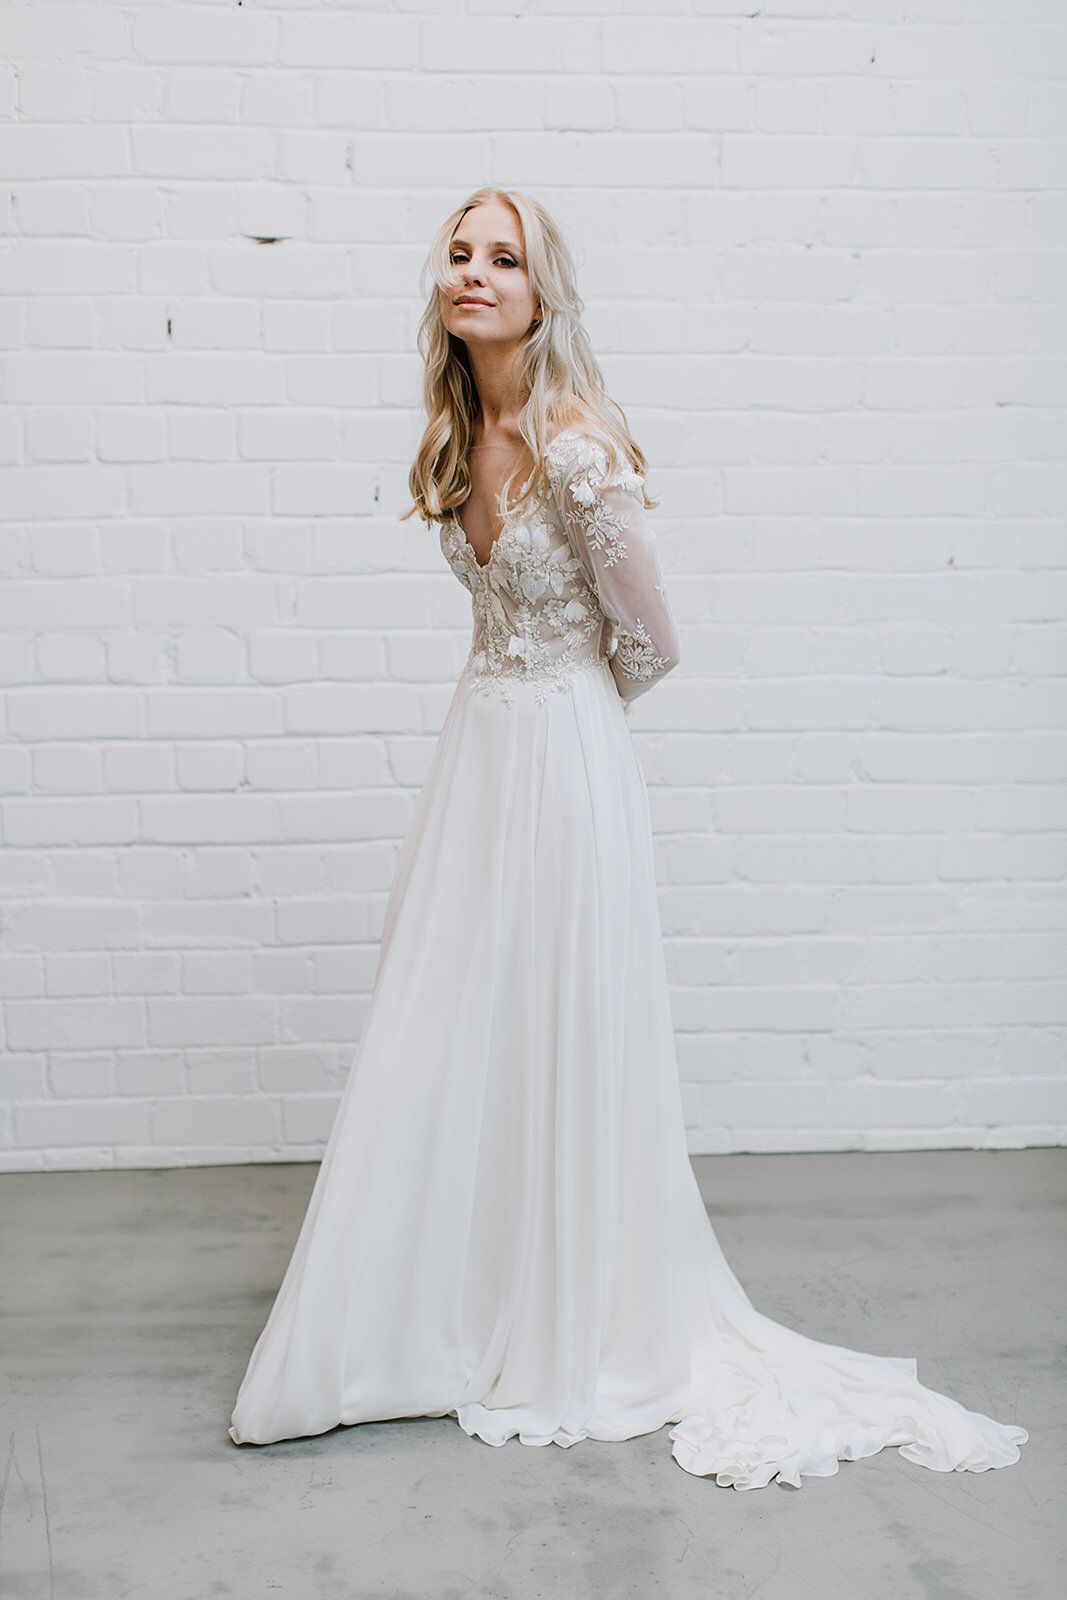 Lace wedding dress deep v neckline gown long sleeve wedding dress